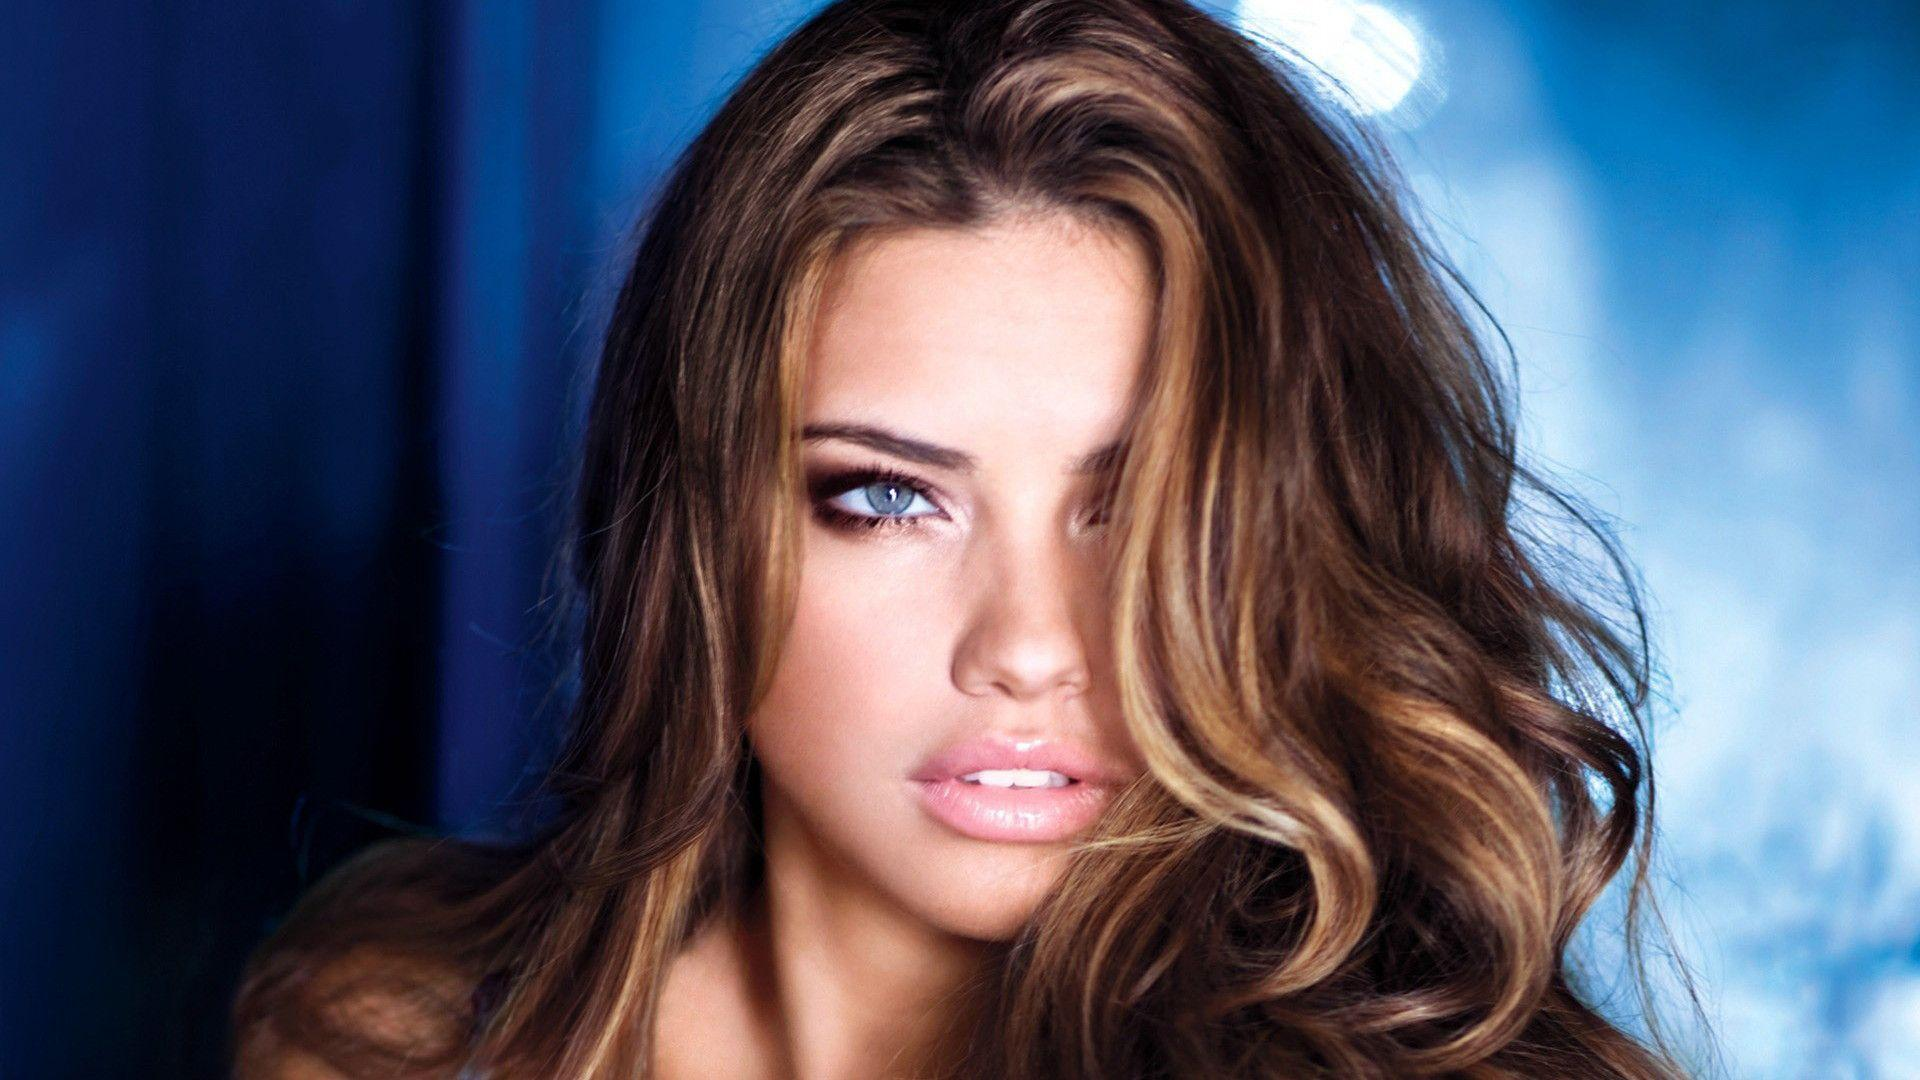 Adriana Lima HD Wallpapers | Movie HD Wallpapers